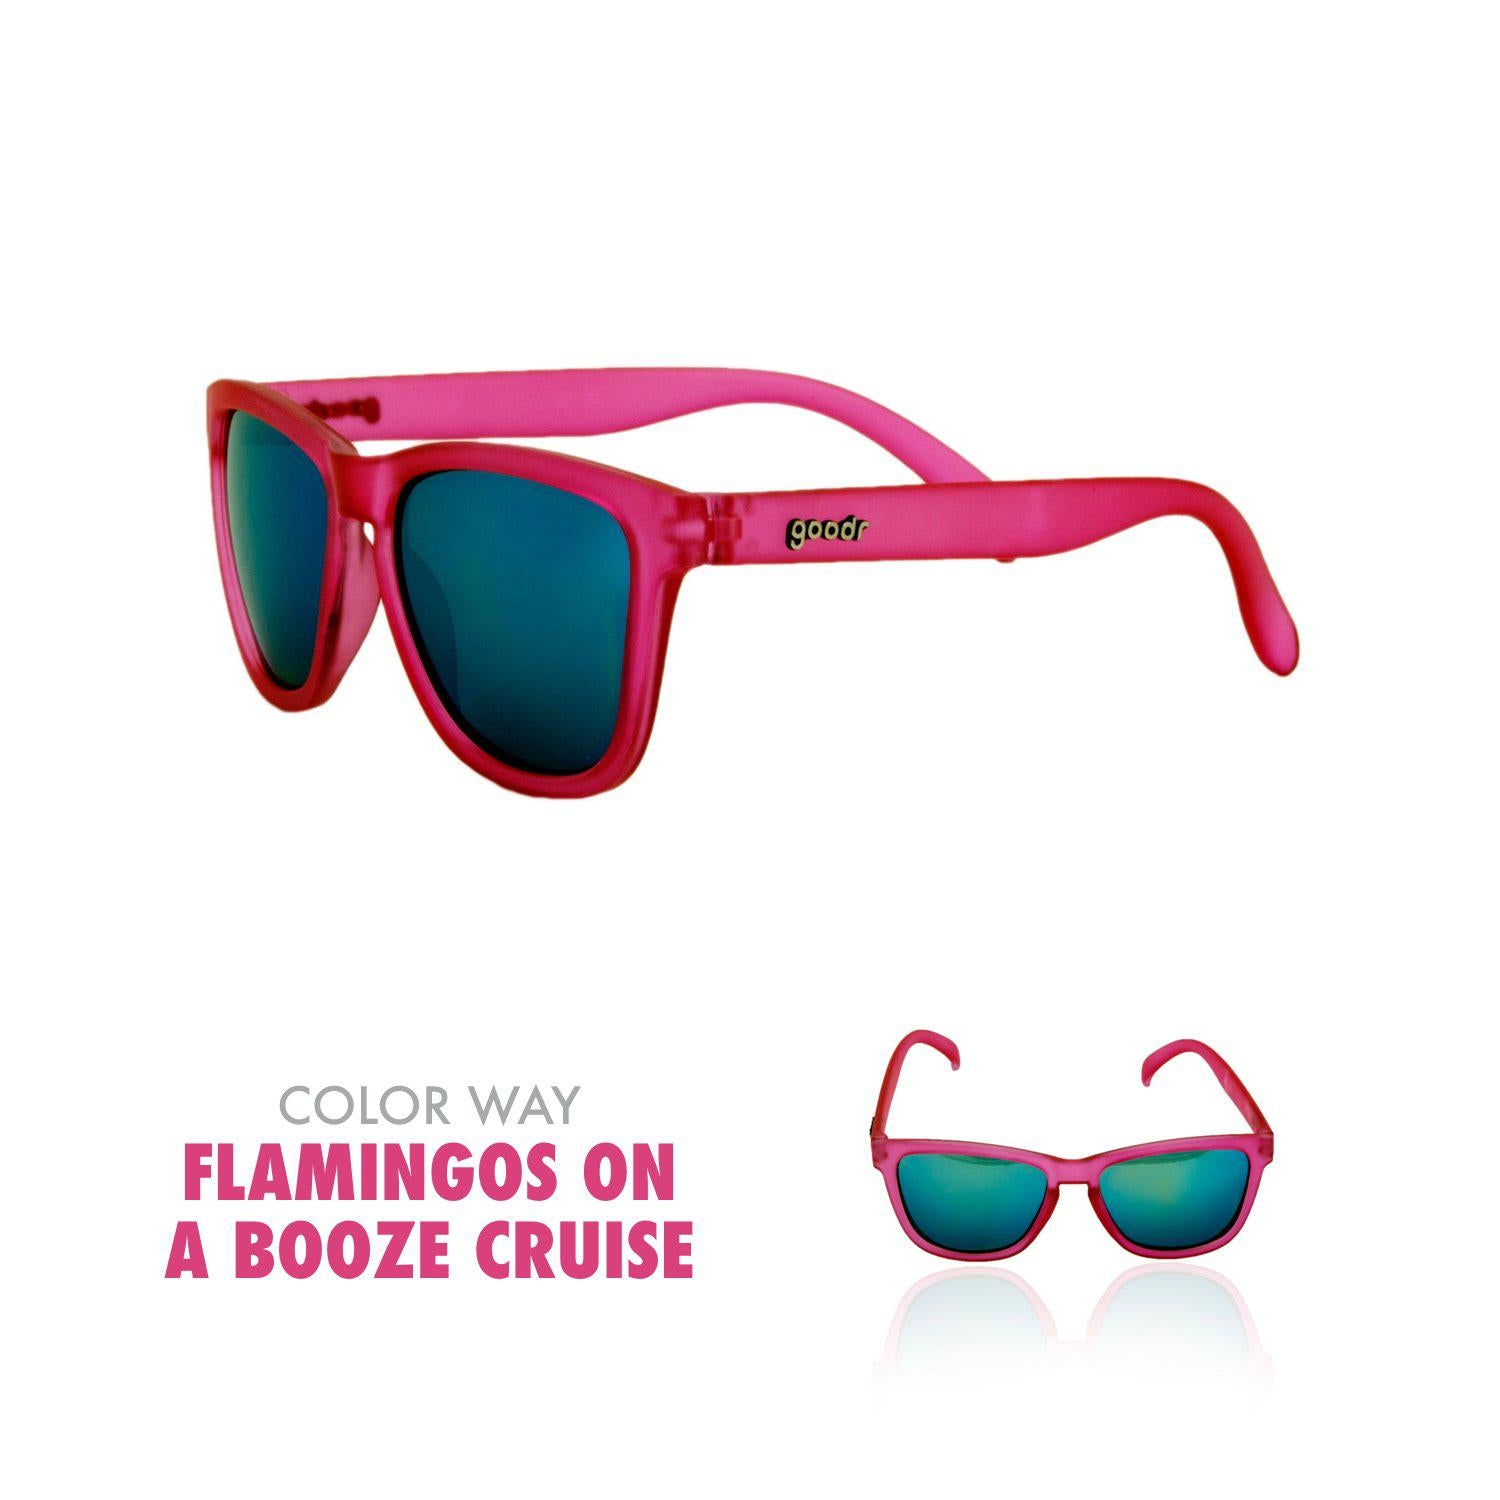 Goodr Running Sun Glasses-Clothing Accessories-Goodr-Flamingo's on a Booze Cruise-2 Foot Adventures